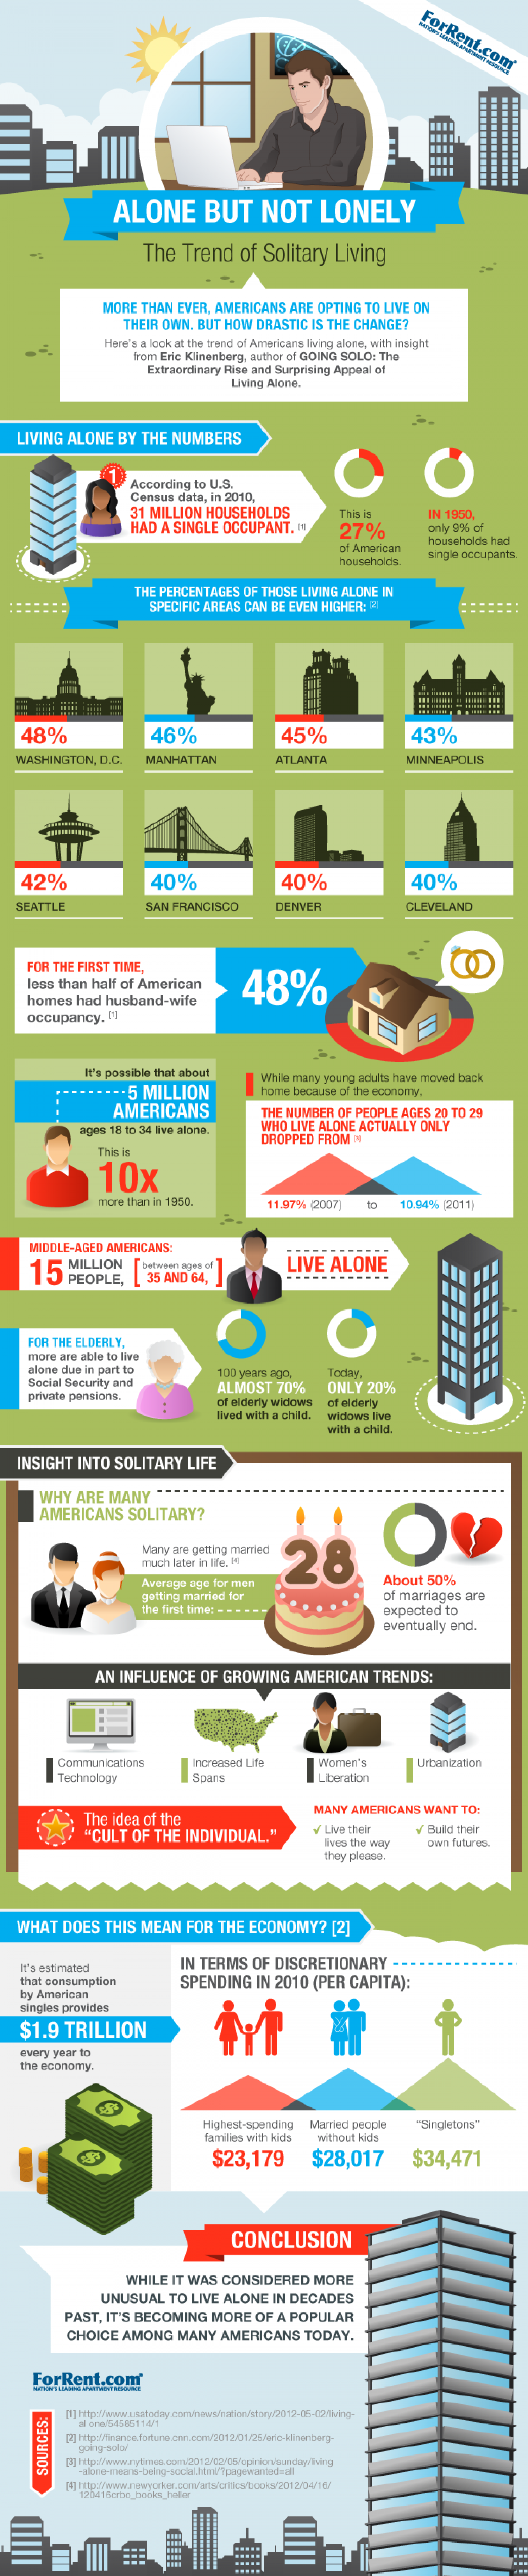 Alone But Not Lonely: The Trend of Solitary Living Infographic